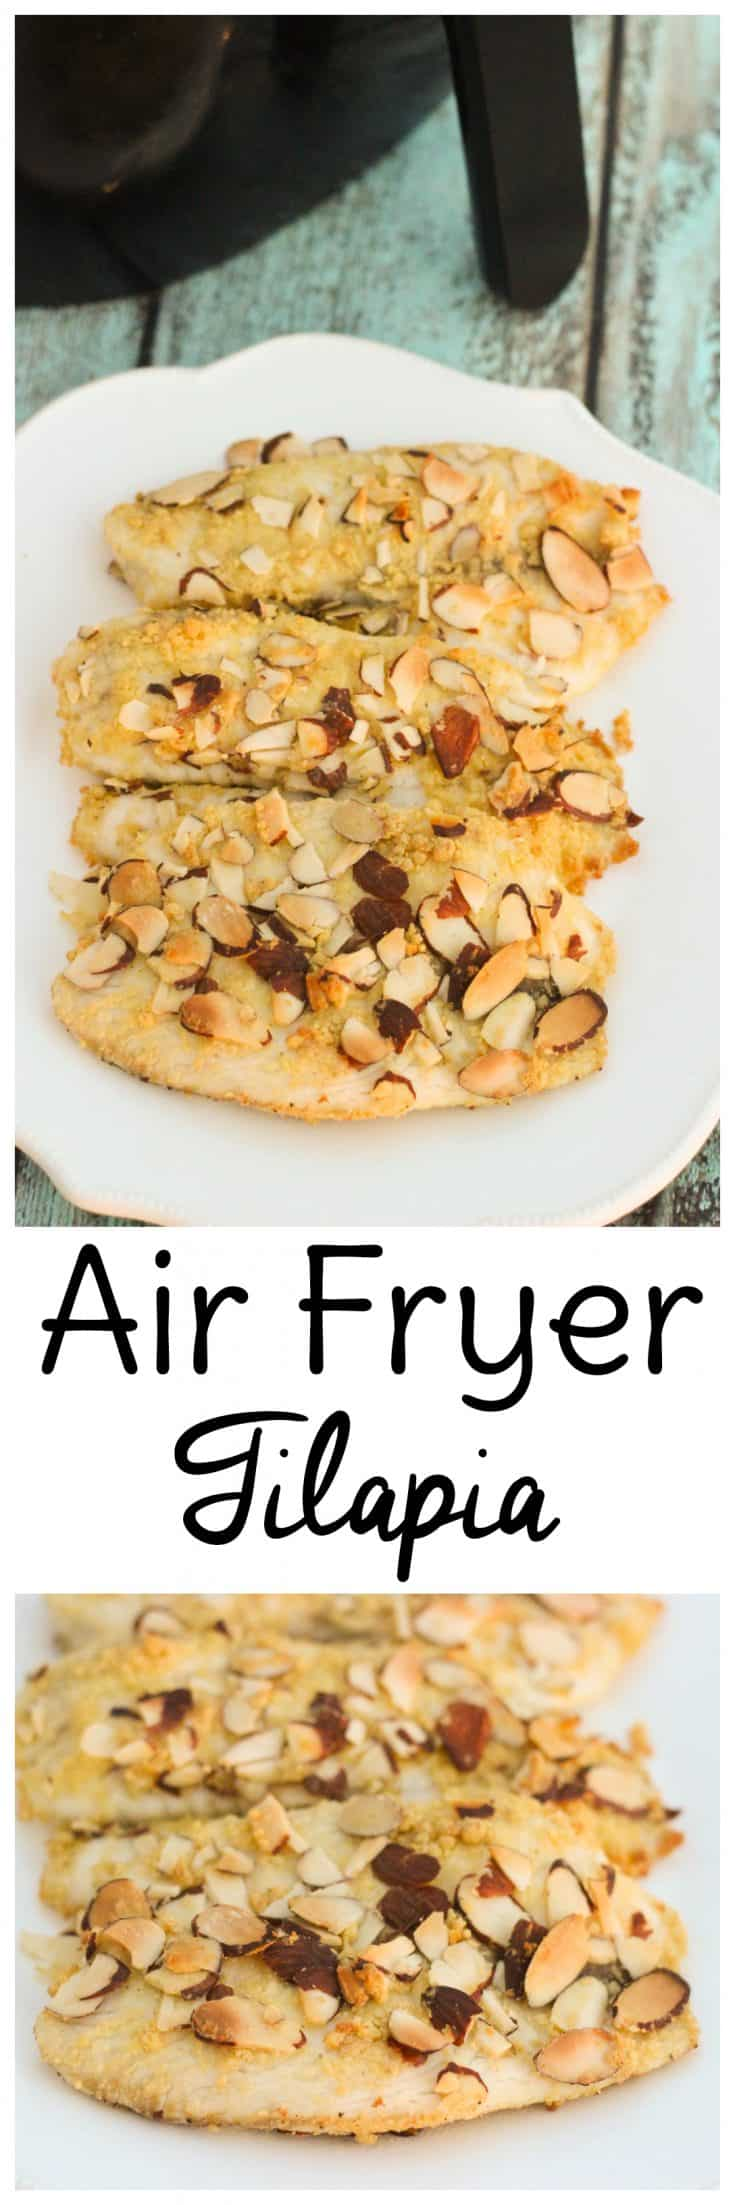 Air fryer fish recipes tend to come out with a perfect, flaky texture in a short amount of time. Try this air fryer tilapia the next time you need to get a flavorful, nutritious dinner on the table quickly that's gluten-free and easily adaptable for paleo diets. #glutenfree #airfryer #paleo